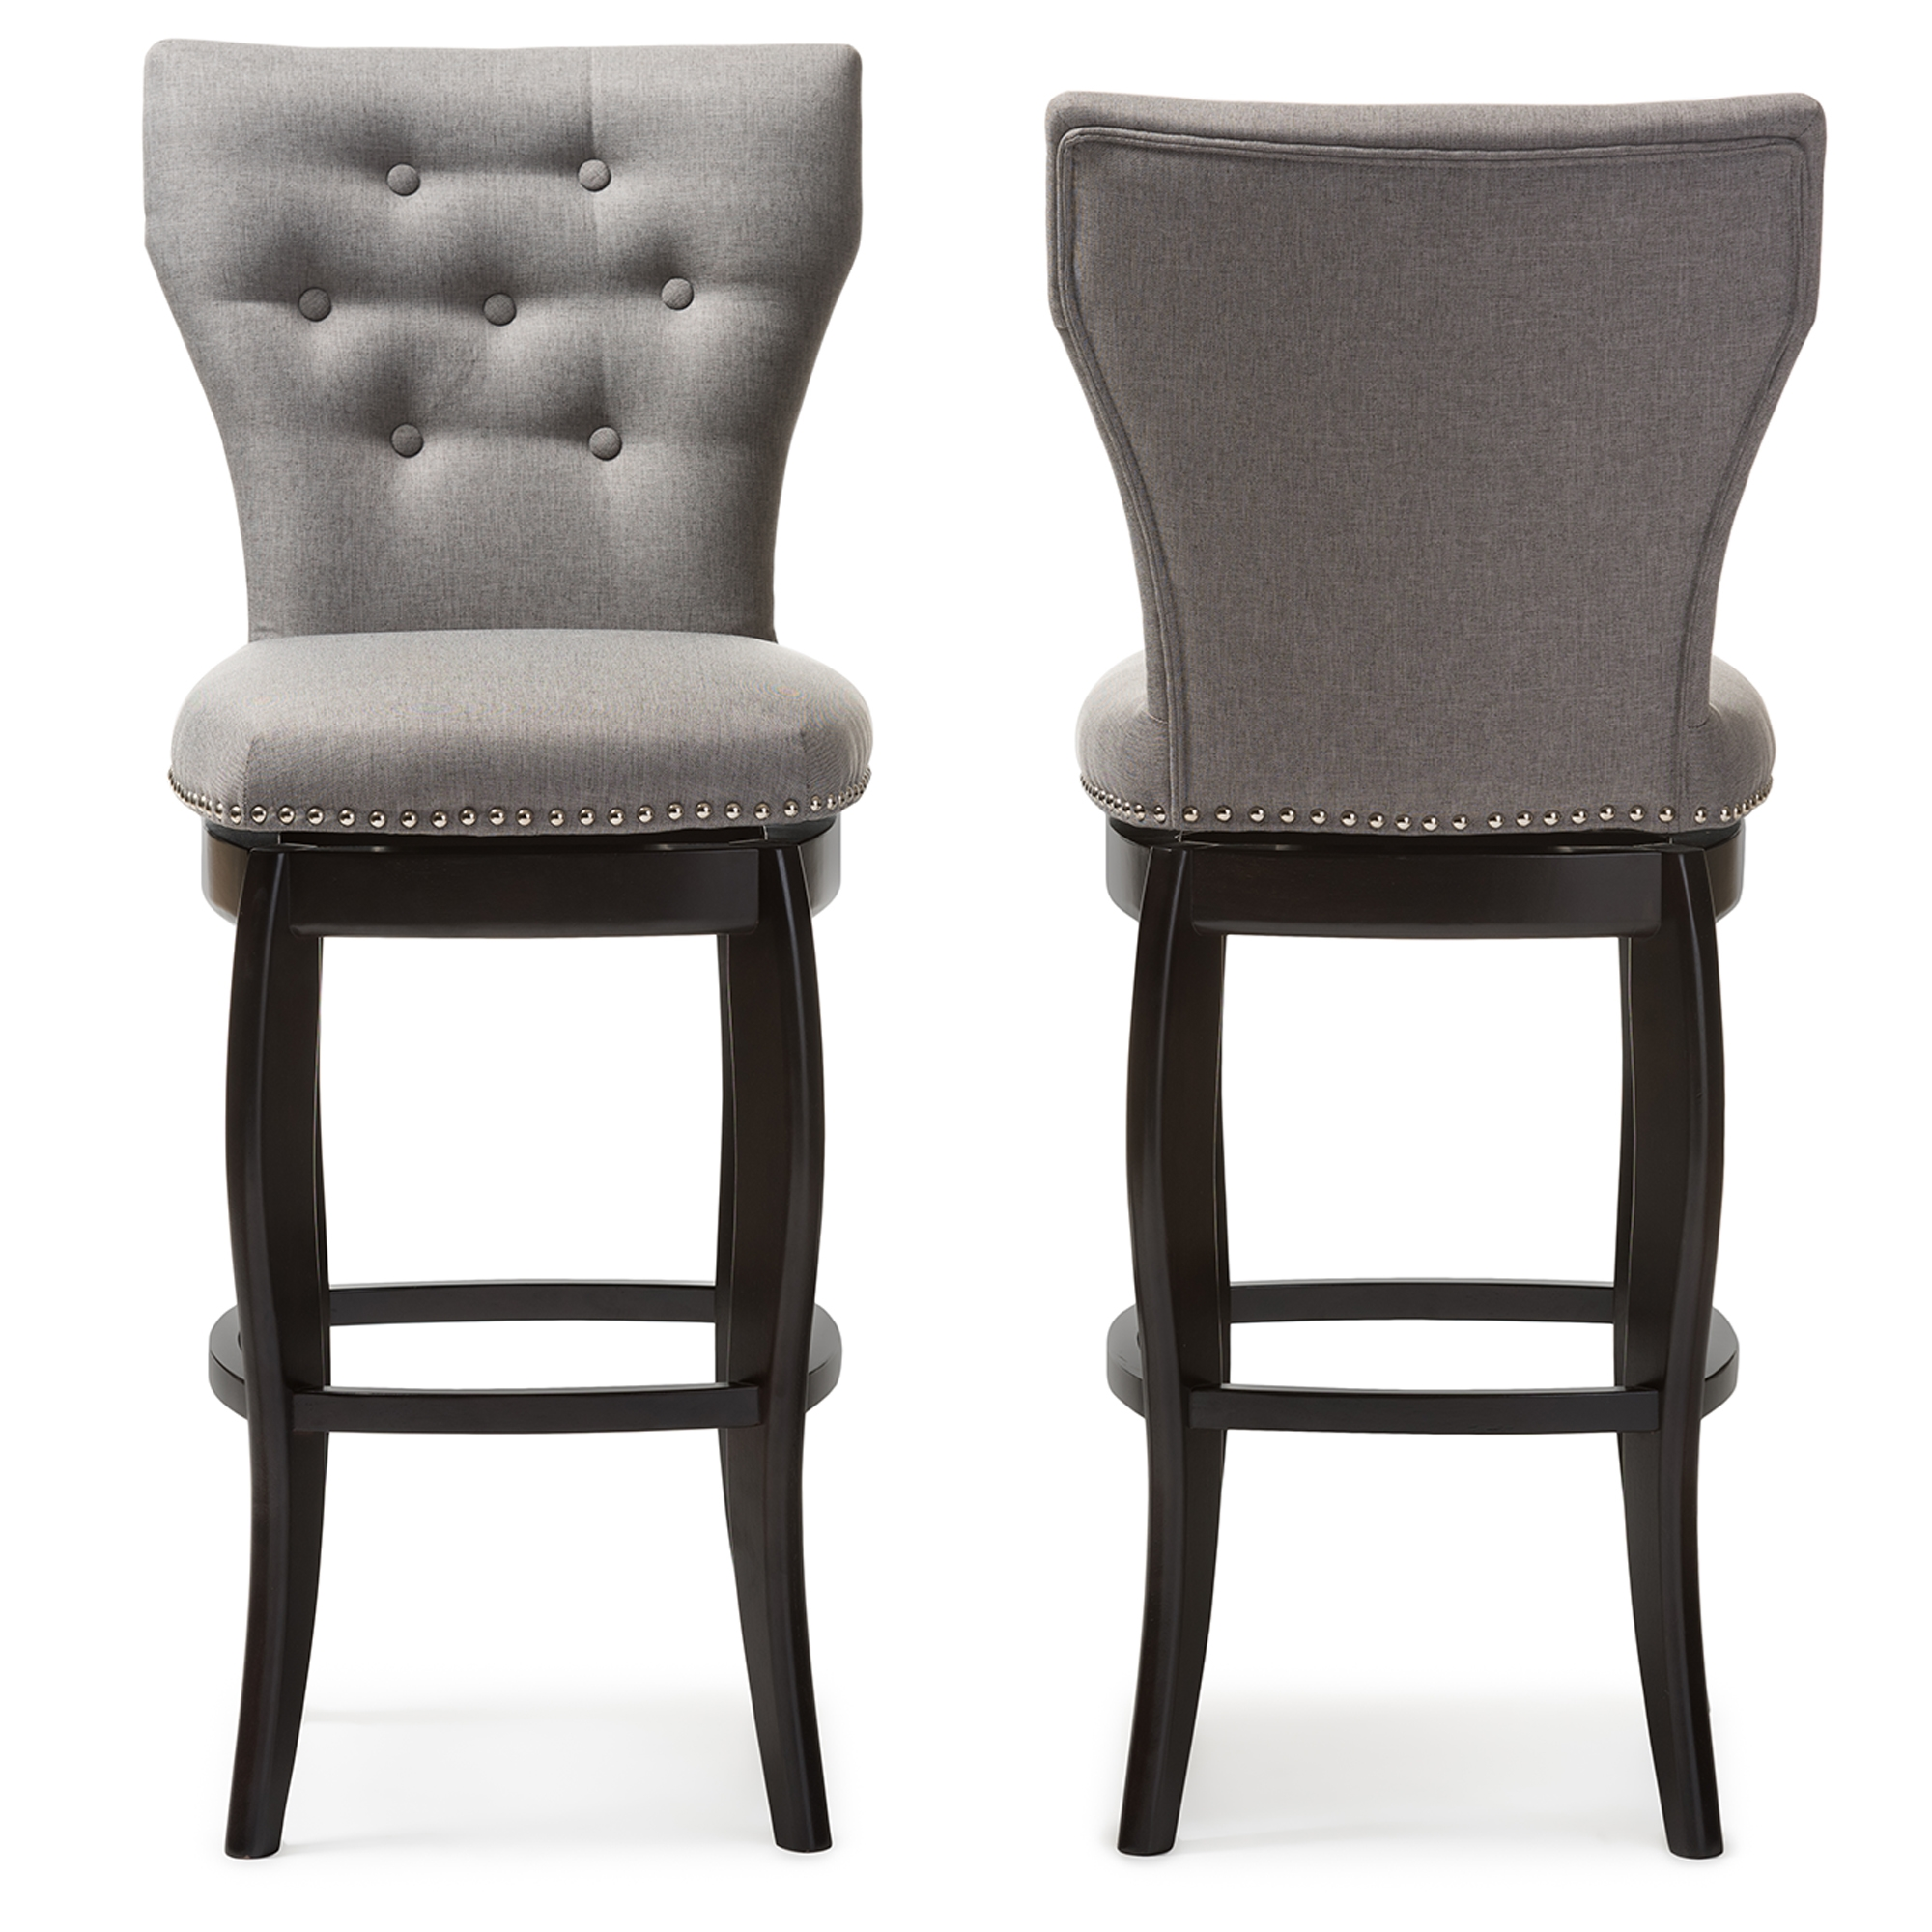 Baxton Studio Leonice Modern and Contemporary Grey Fabric Upholstered Button-tufted 29-Inch Swivel Bar Stool  sc 1 st  Baxton Studio Outlet & Baxton Studio Leonice Modern and Contemporary Grey Fabric ... islam-shia.org